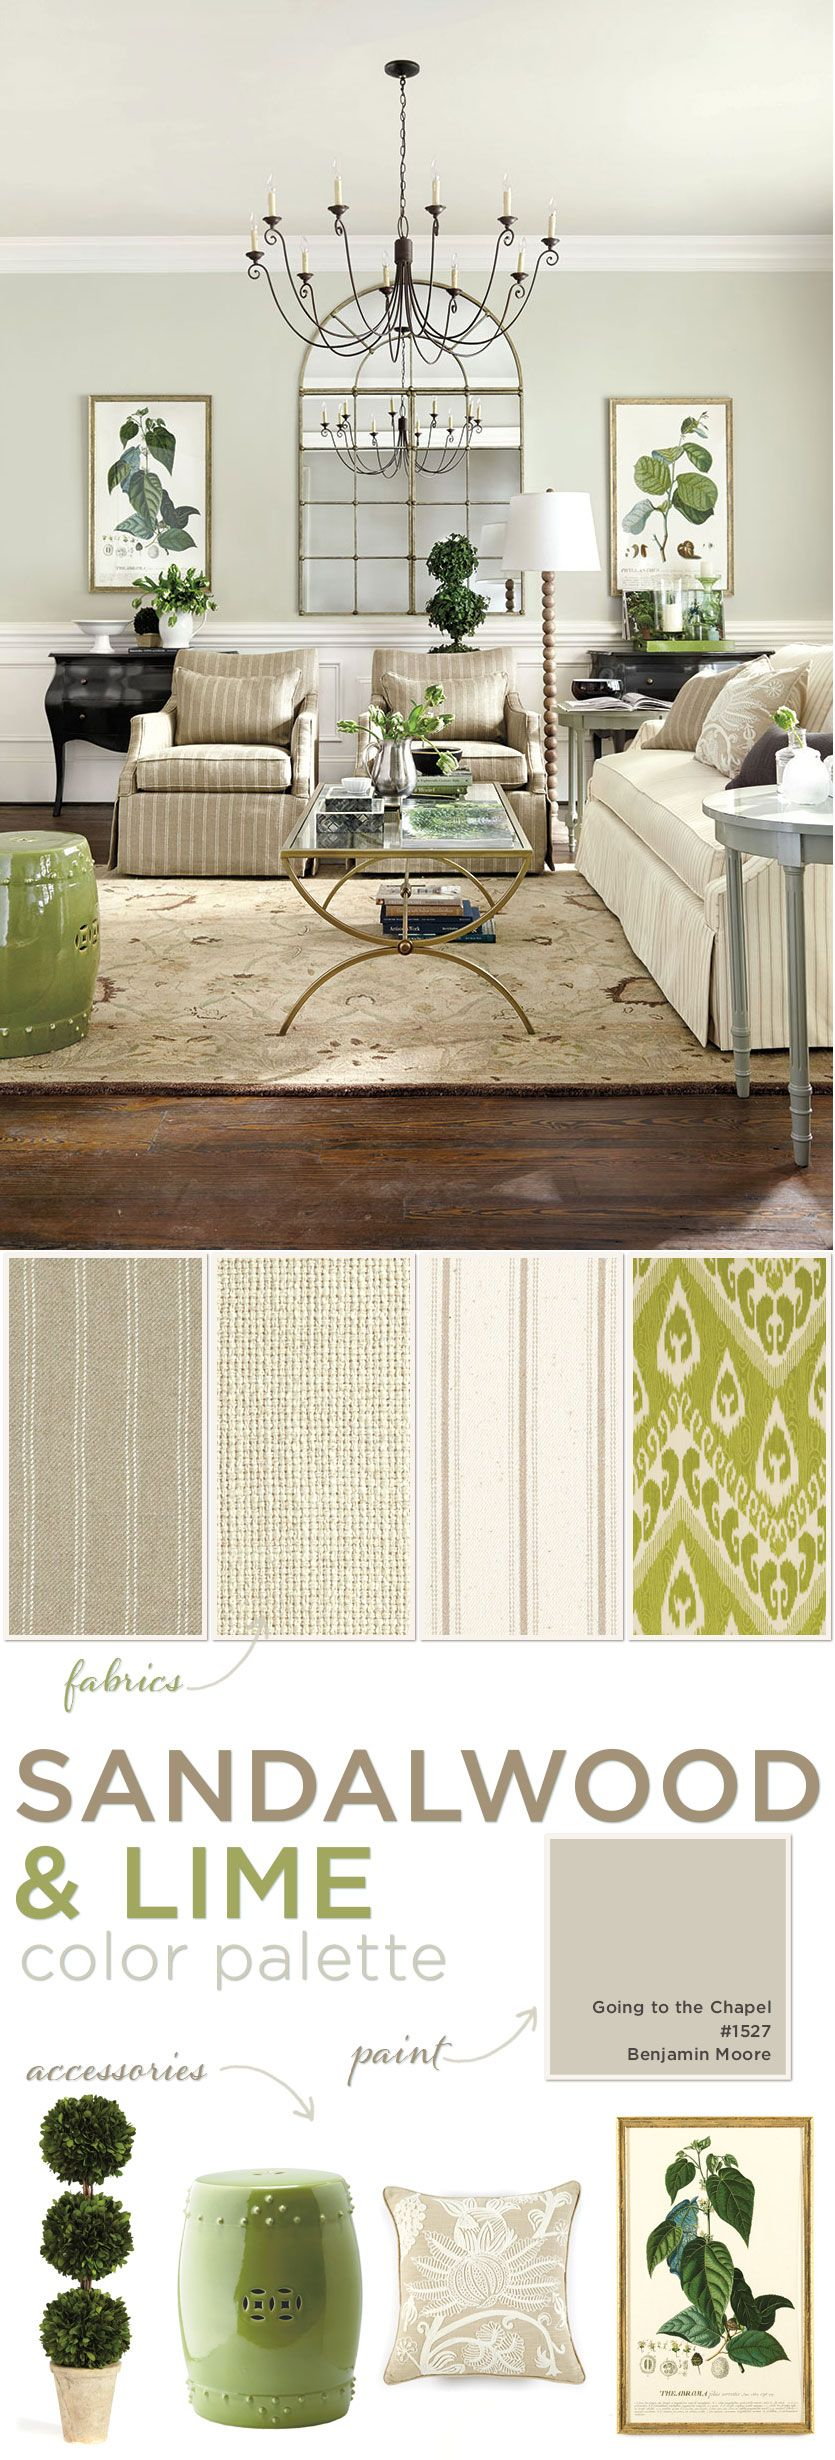 Inspired Color Palettes for Spring 2014 | Wall colors, Green accents ...